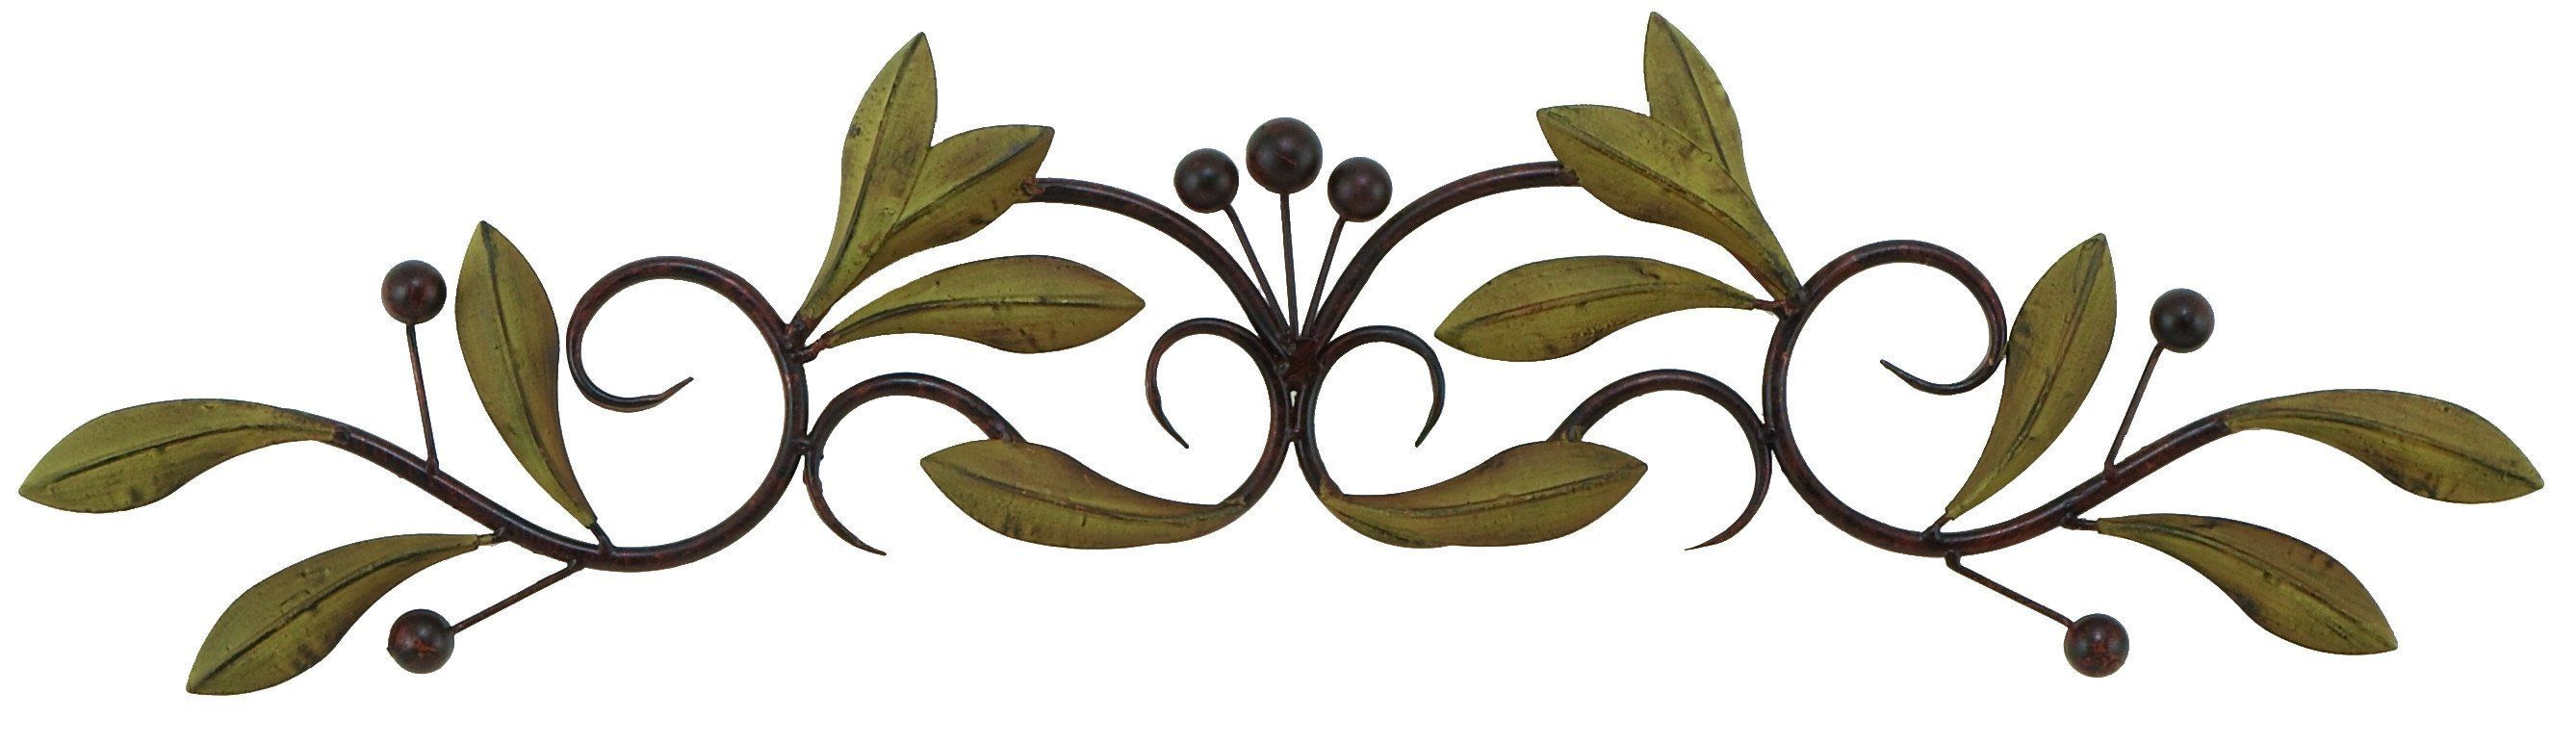 31 Olive Branch Door Top Wall Hanging In Metal Green And